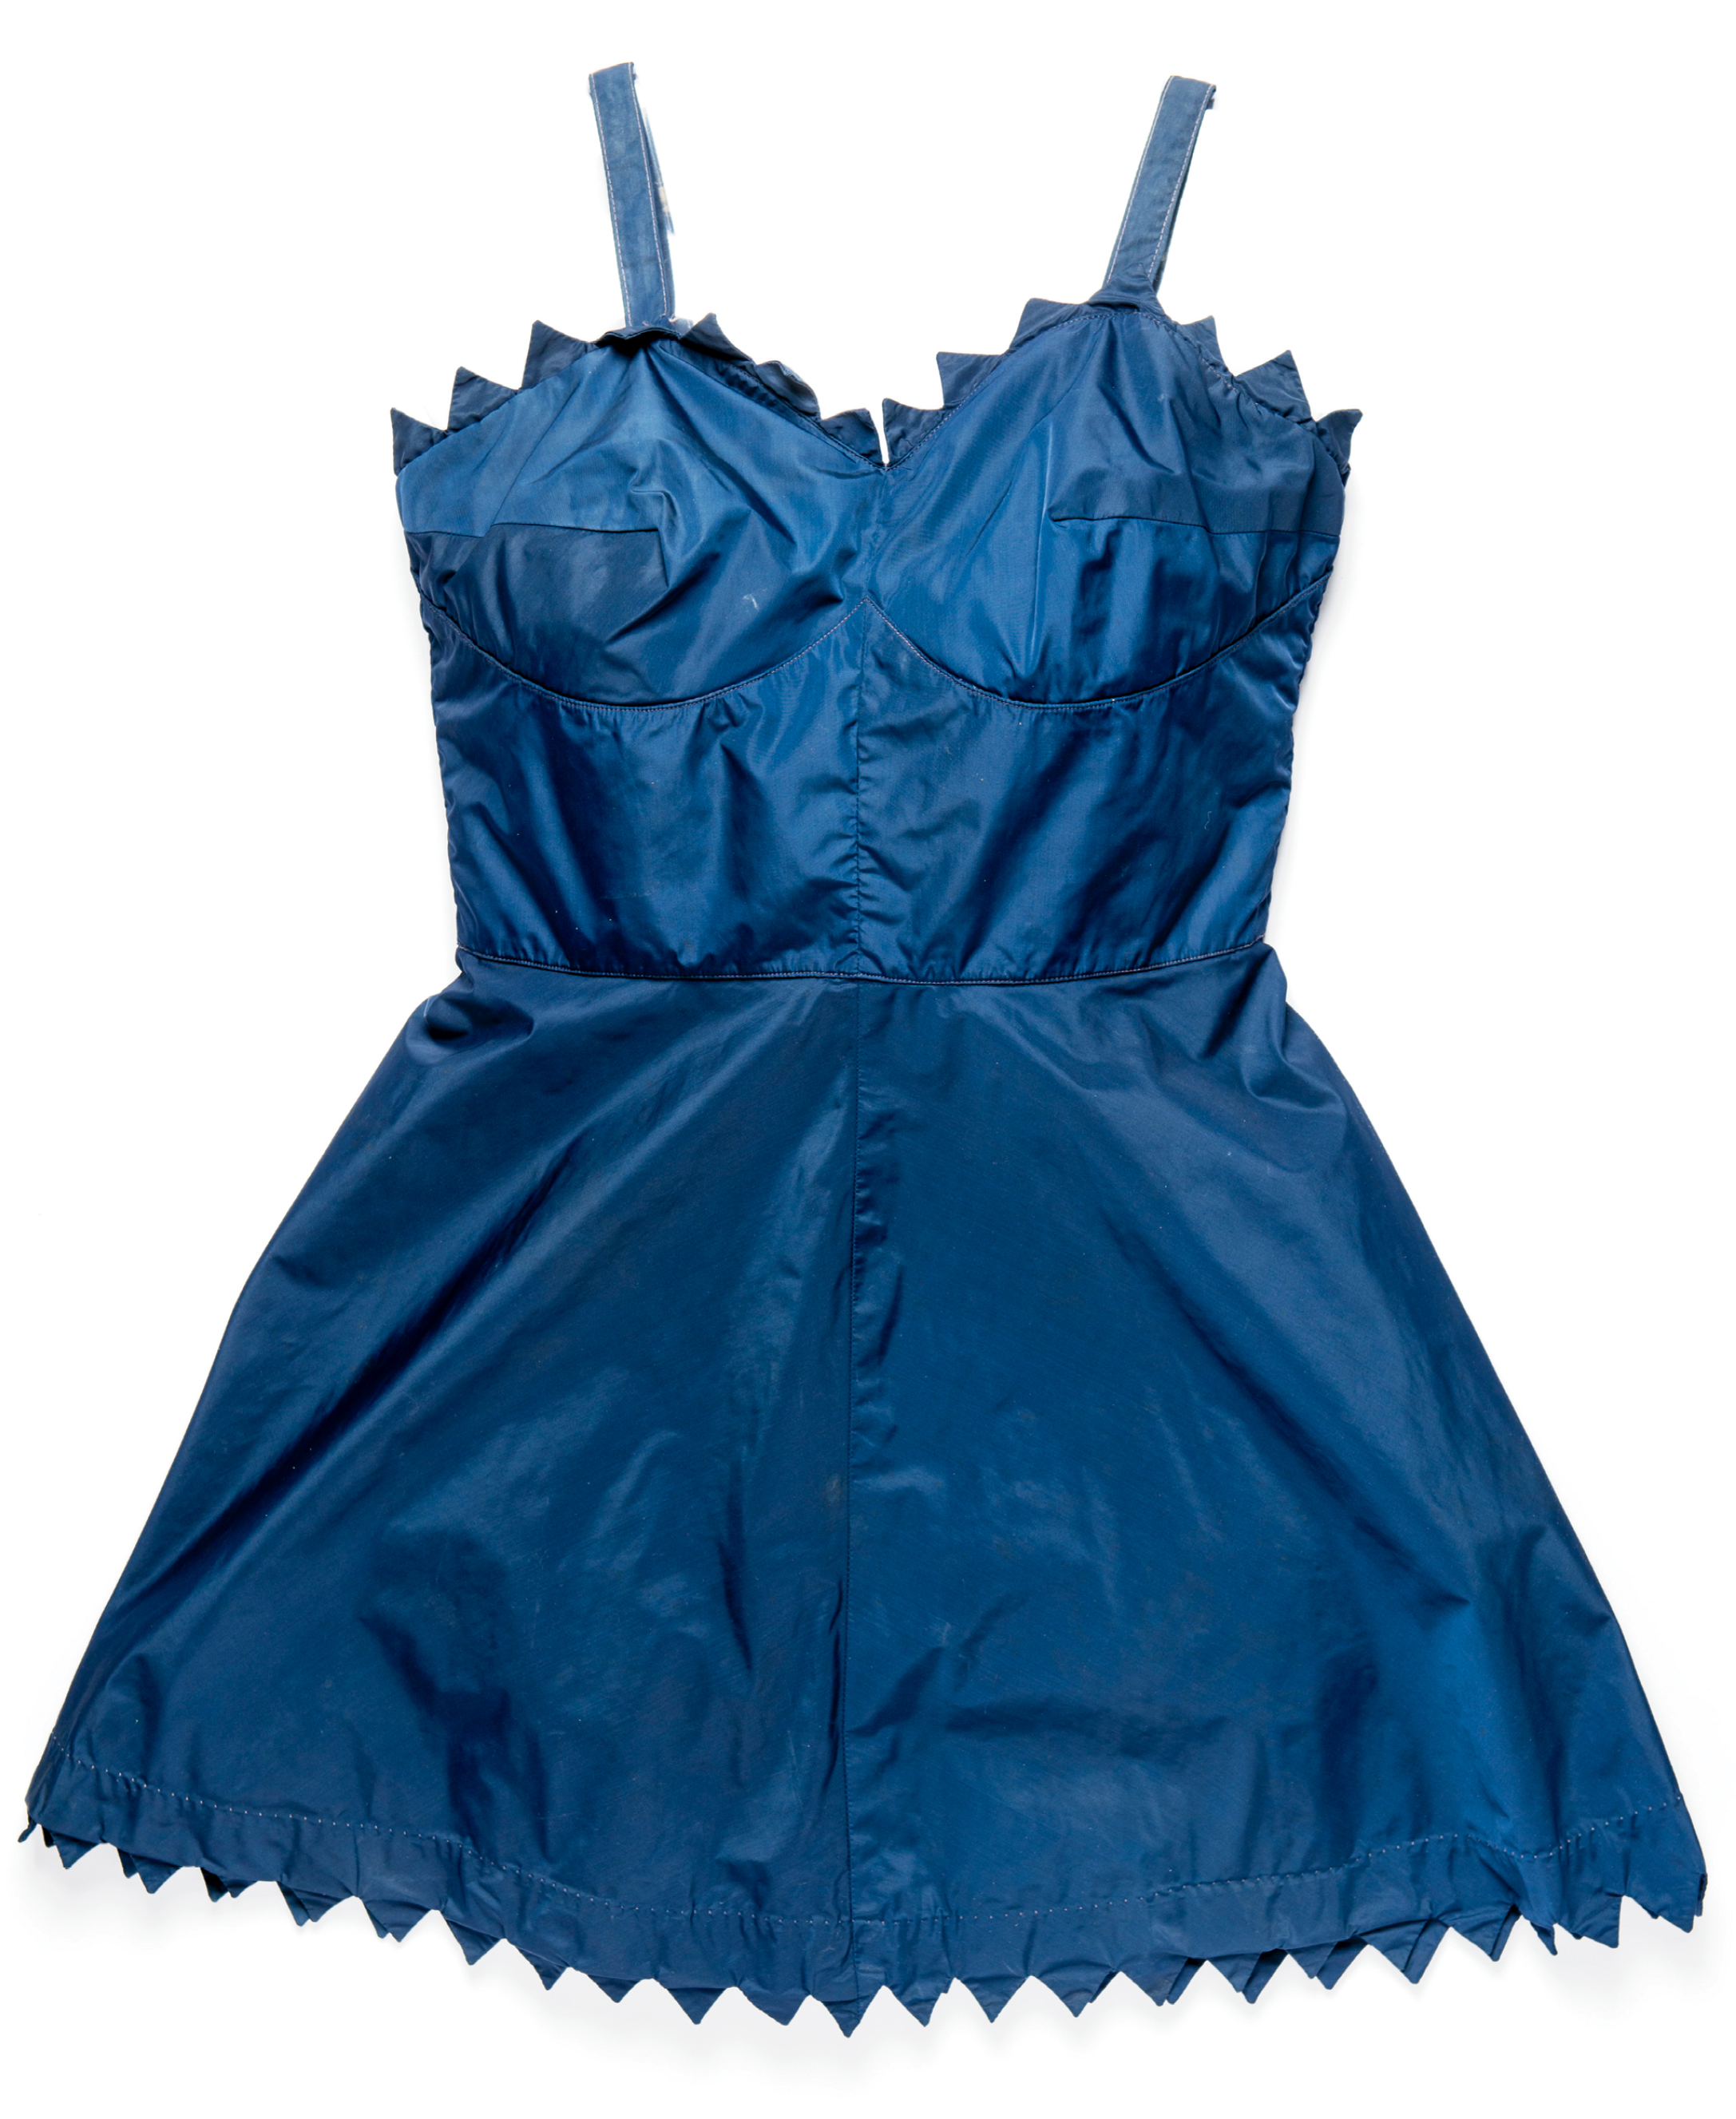 1930s - Isle of Palms and Folly Beach were awakening into hot destinations for fun in the sun and surf during the decade in which this taffeta frock debuted.